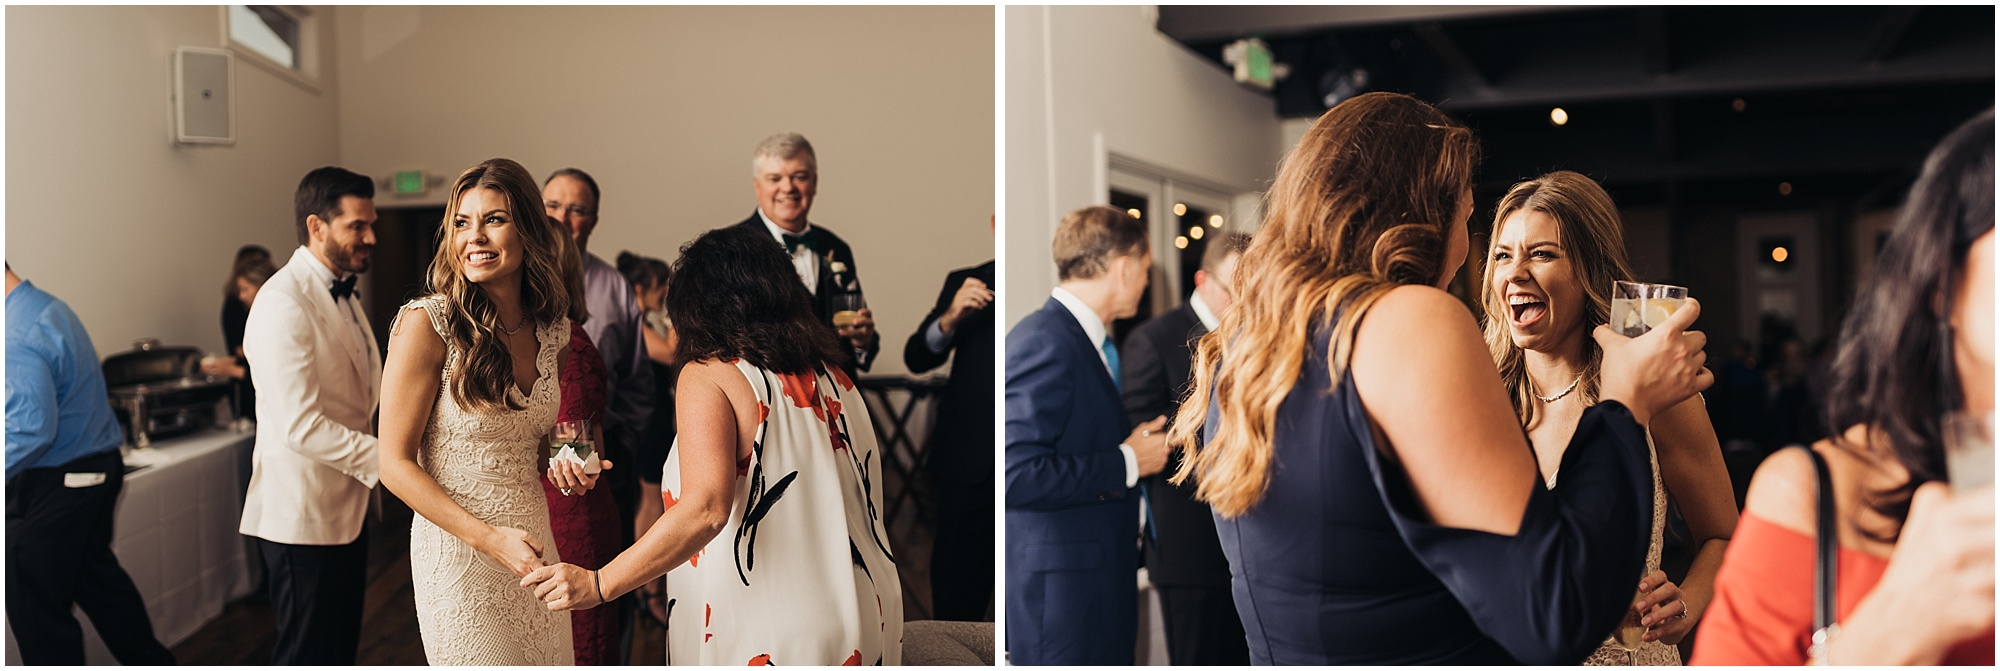 Candid moments at reception